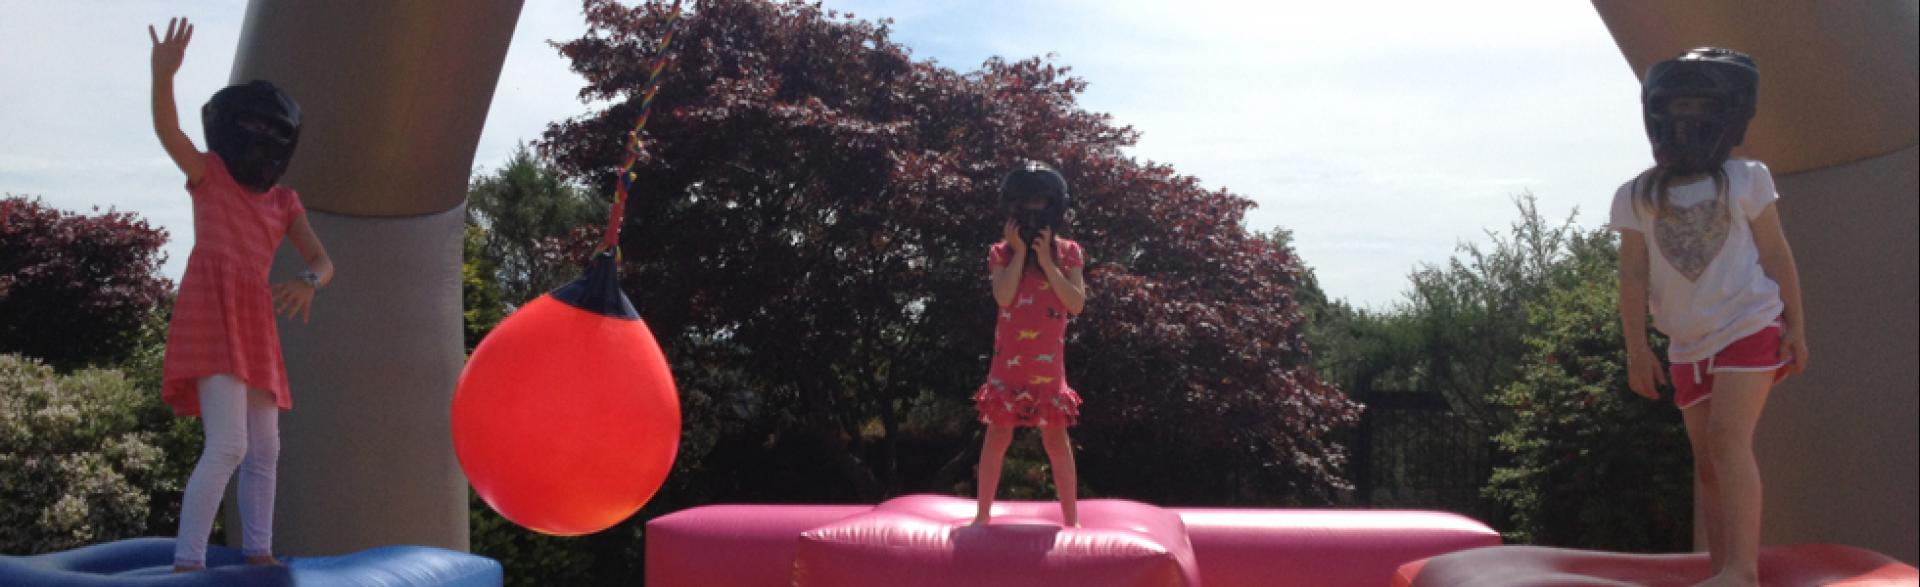 Corporate Fun Day, Aberdeen, July 2014